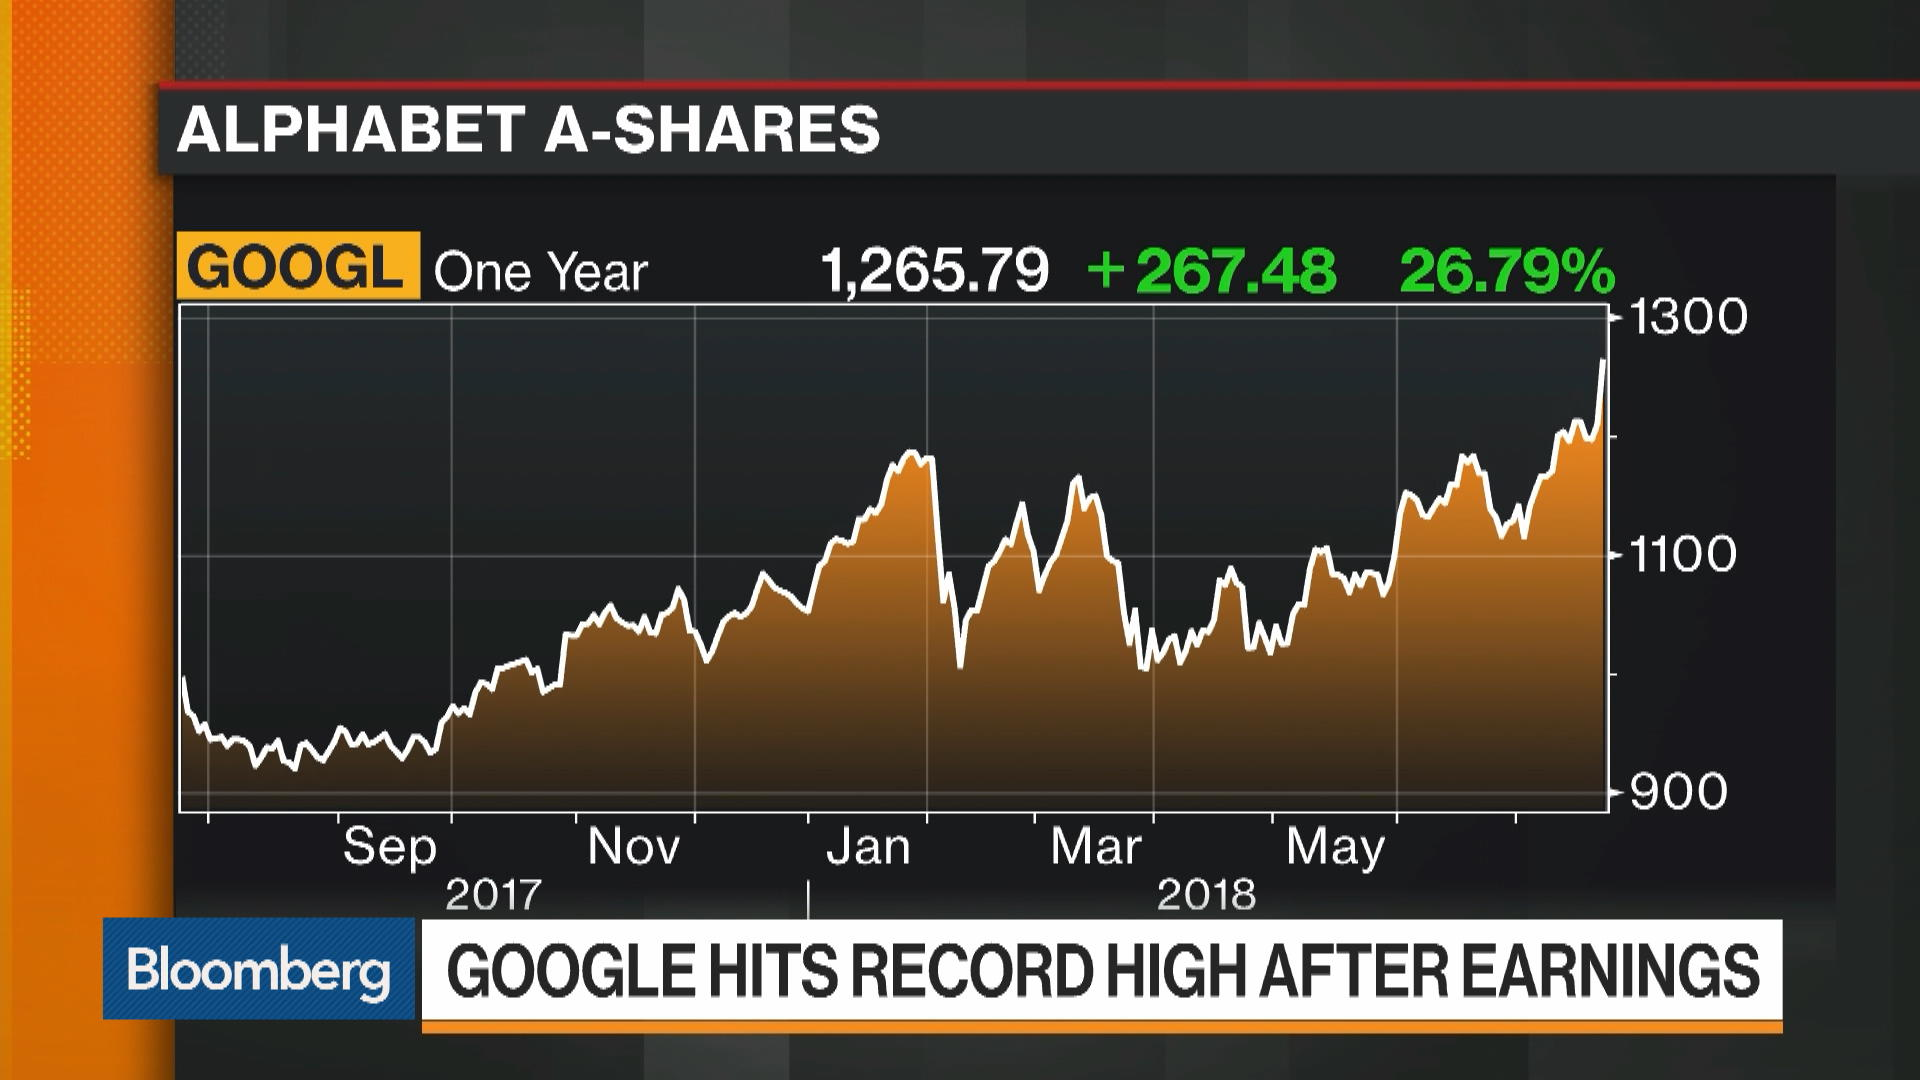 Google shares hit record highs 95